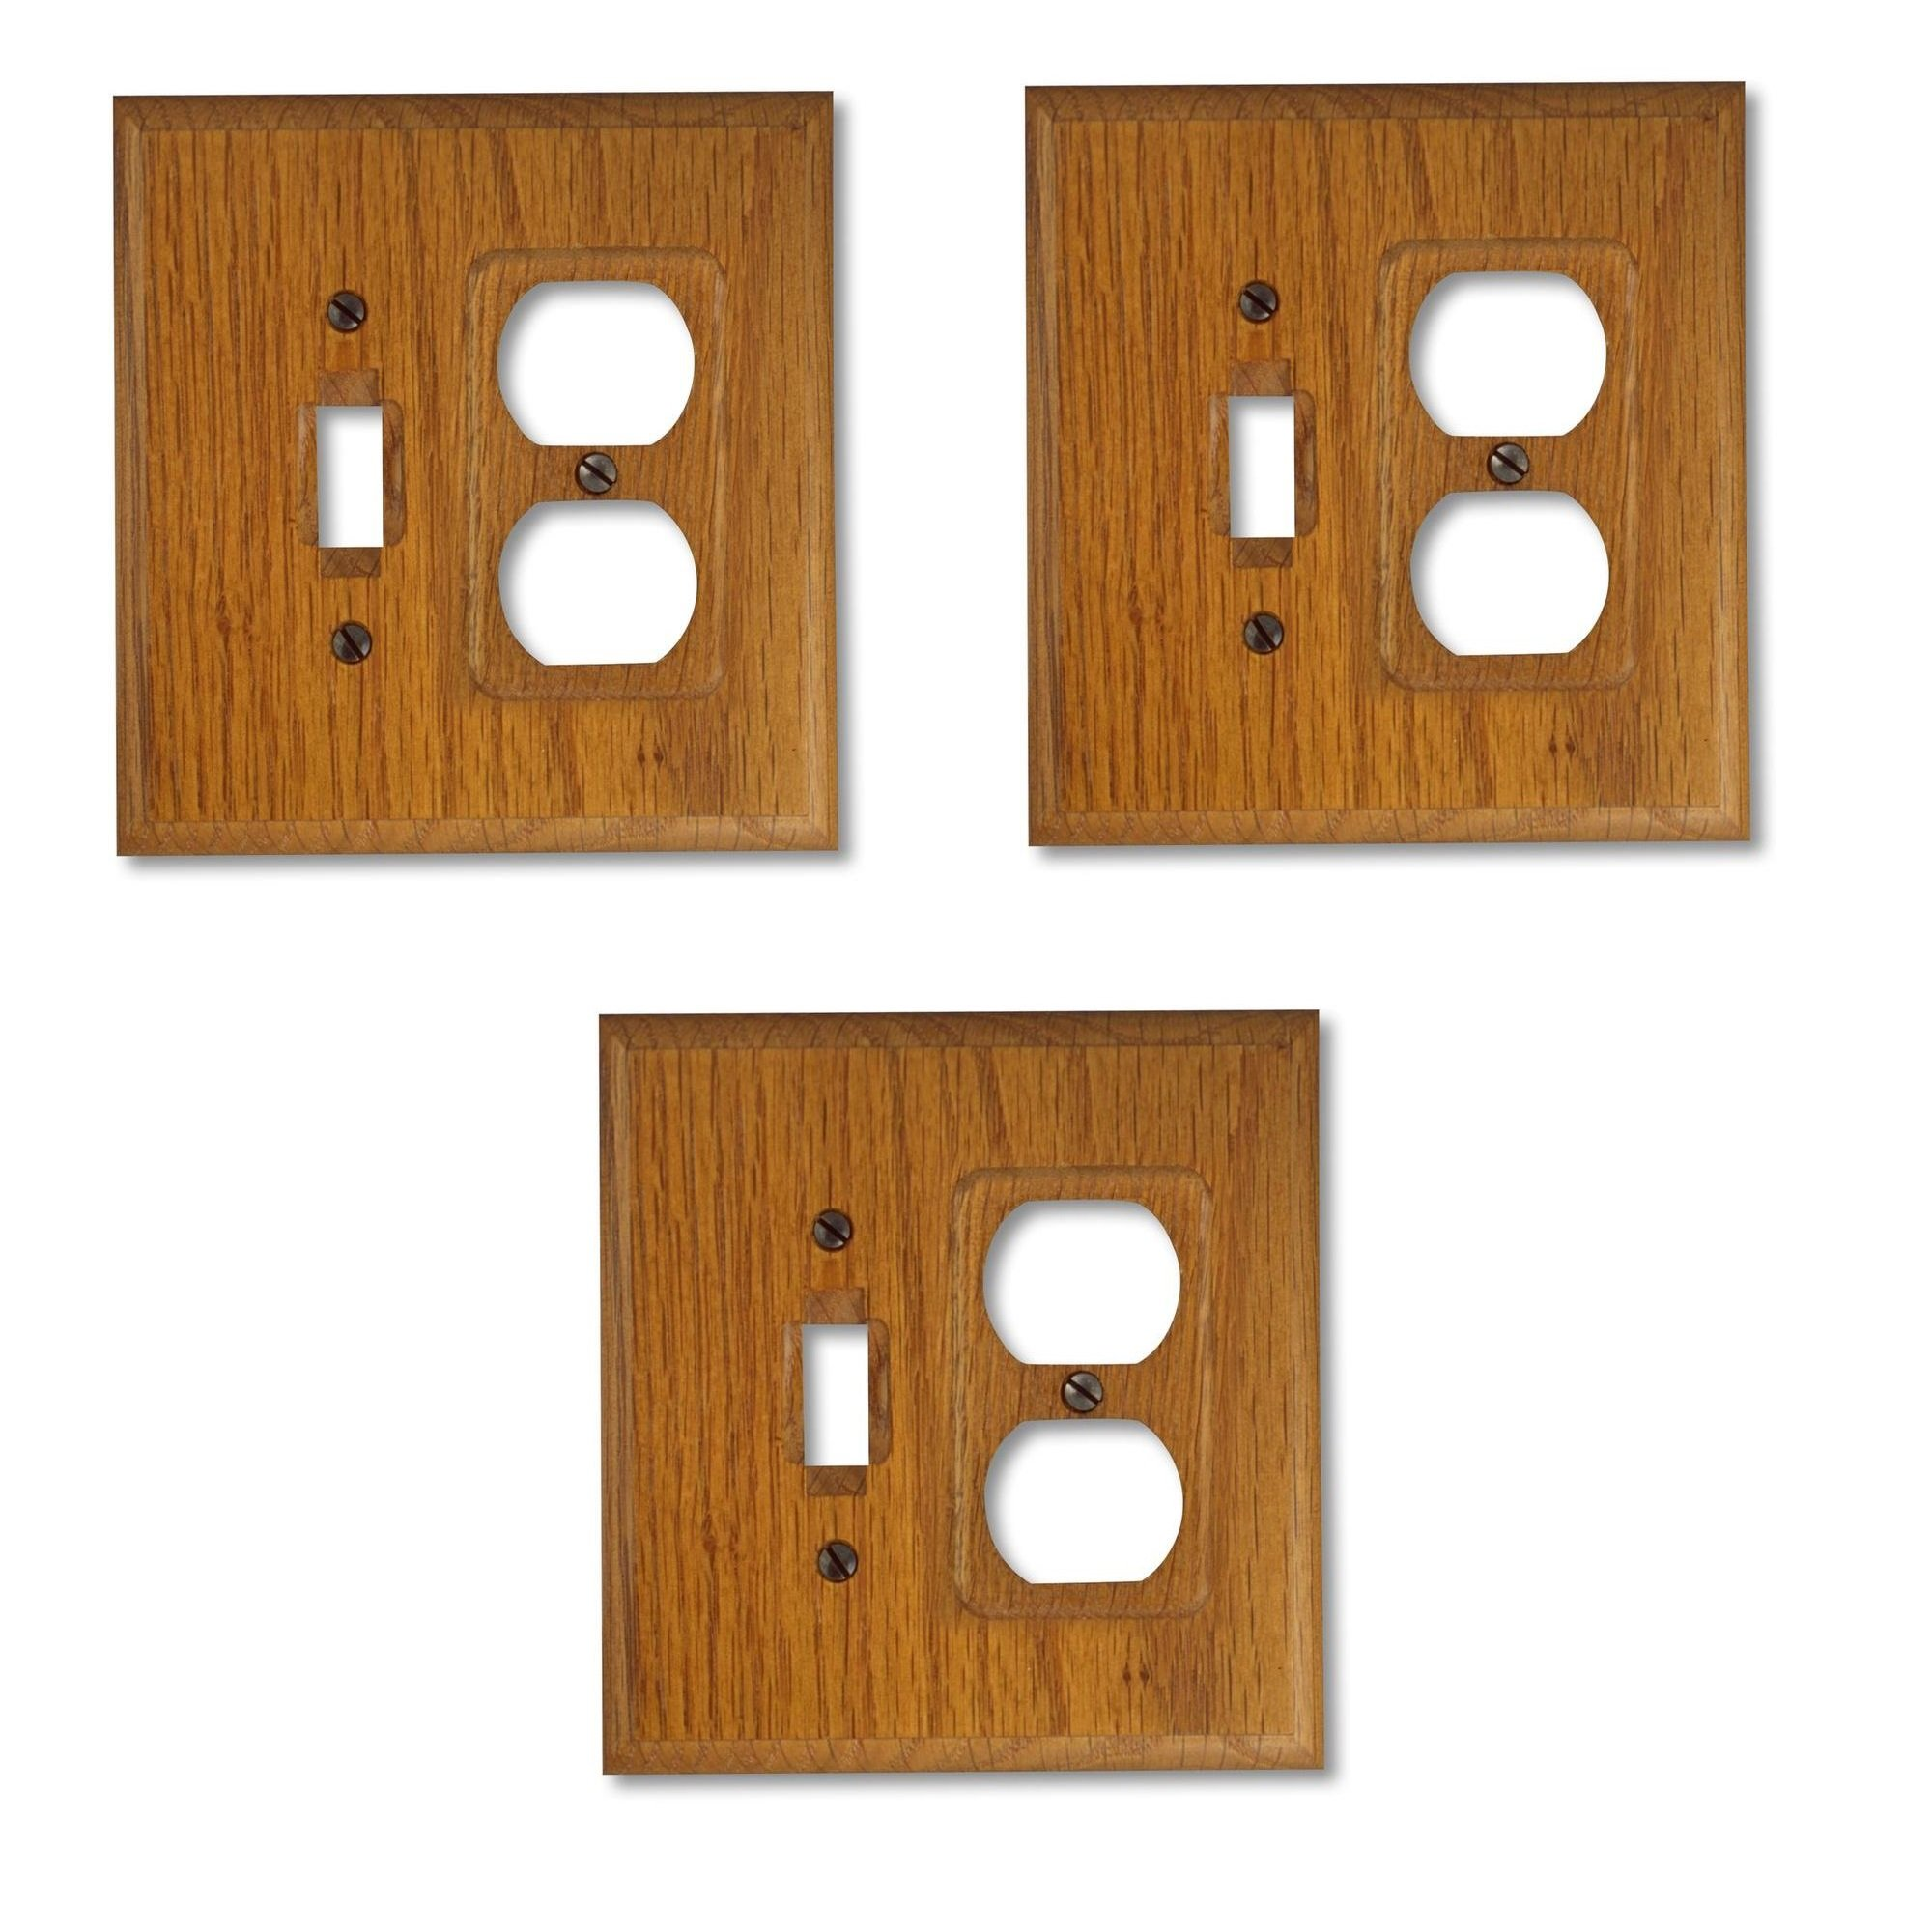 Square Wood Wall Plate Cover, 1 Toggle Switch & 1 Duplex Outlet, Solid Oak (3-pack)